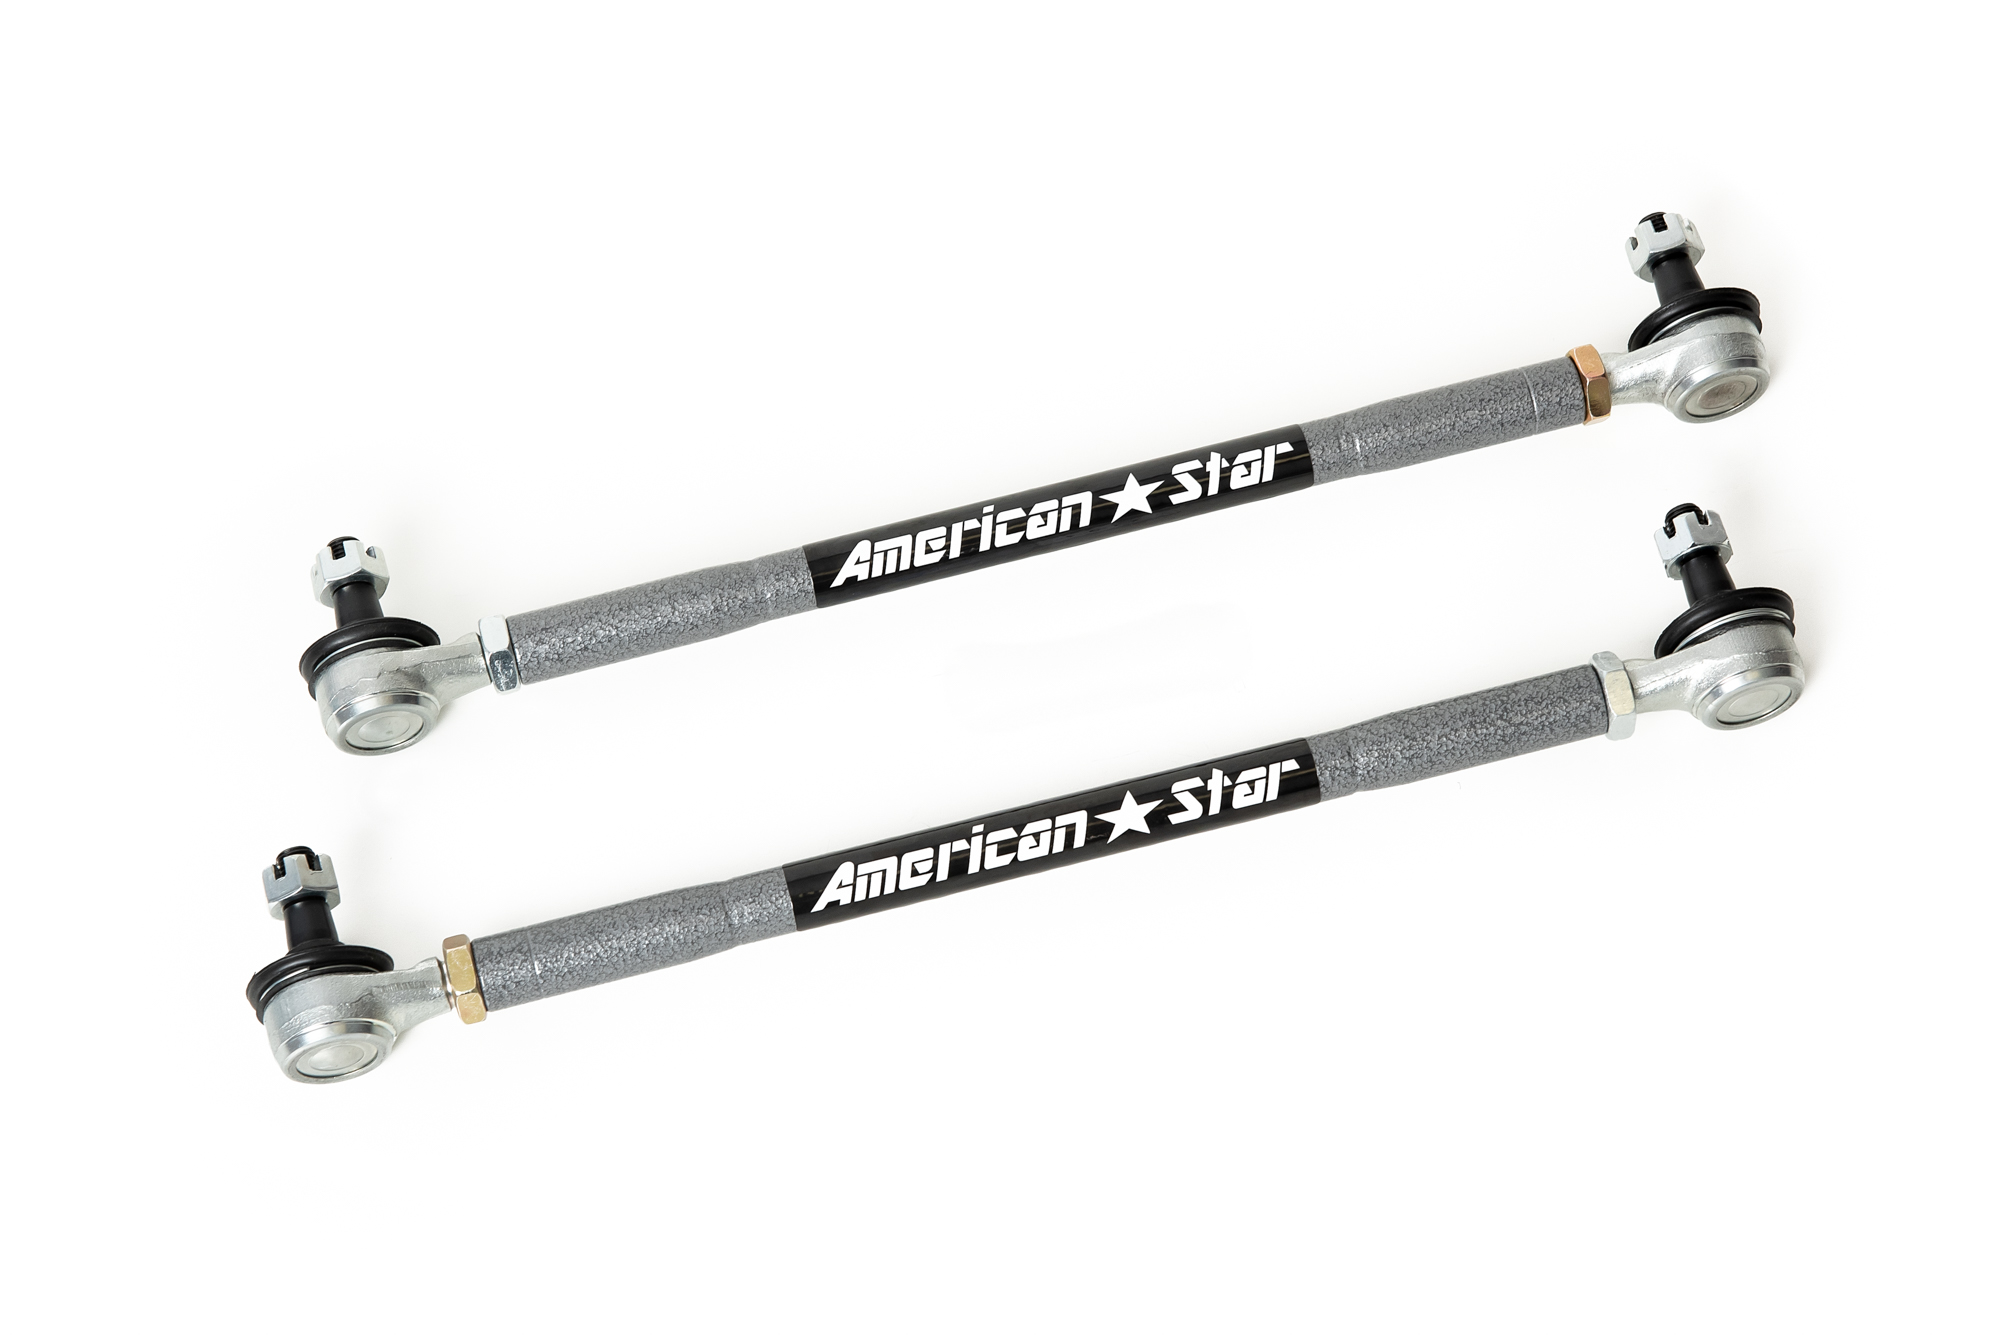 American Star Tie Rod 4130 Chromoly Upgrade Kit for Yamaha